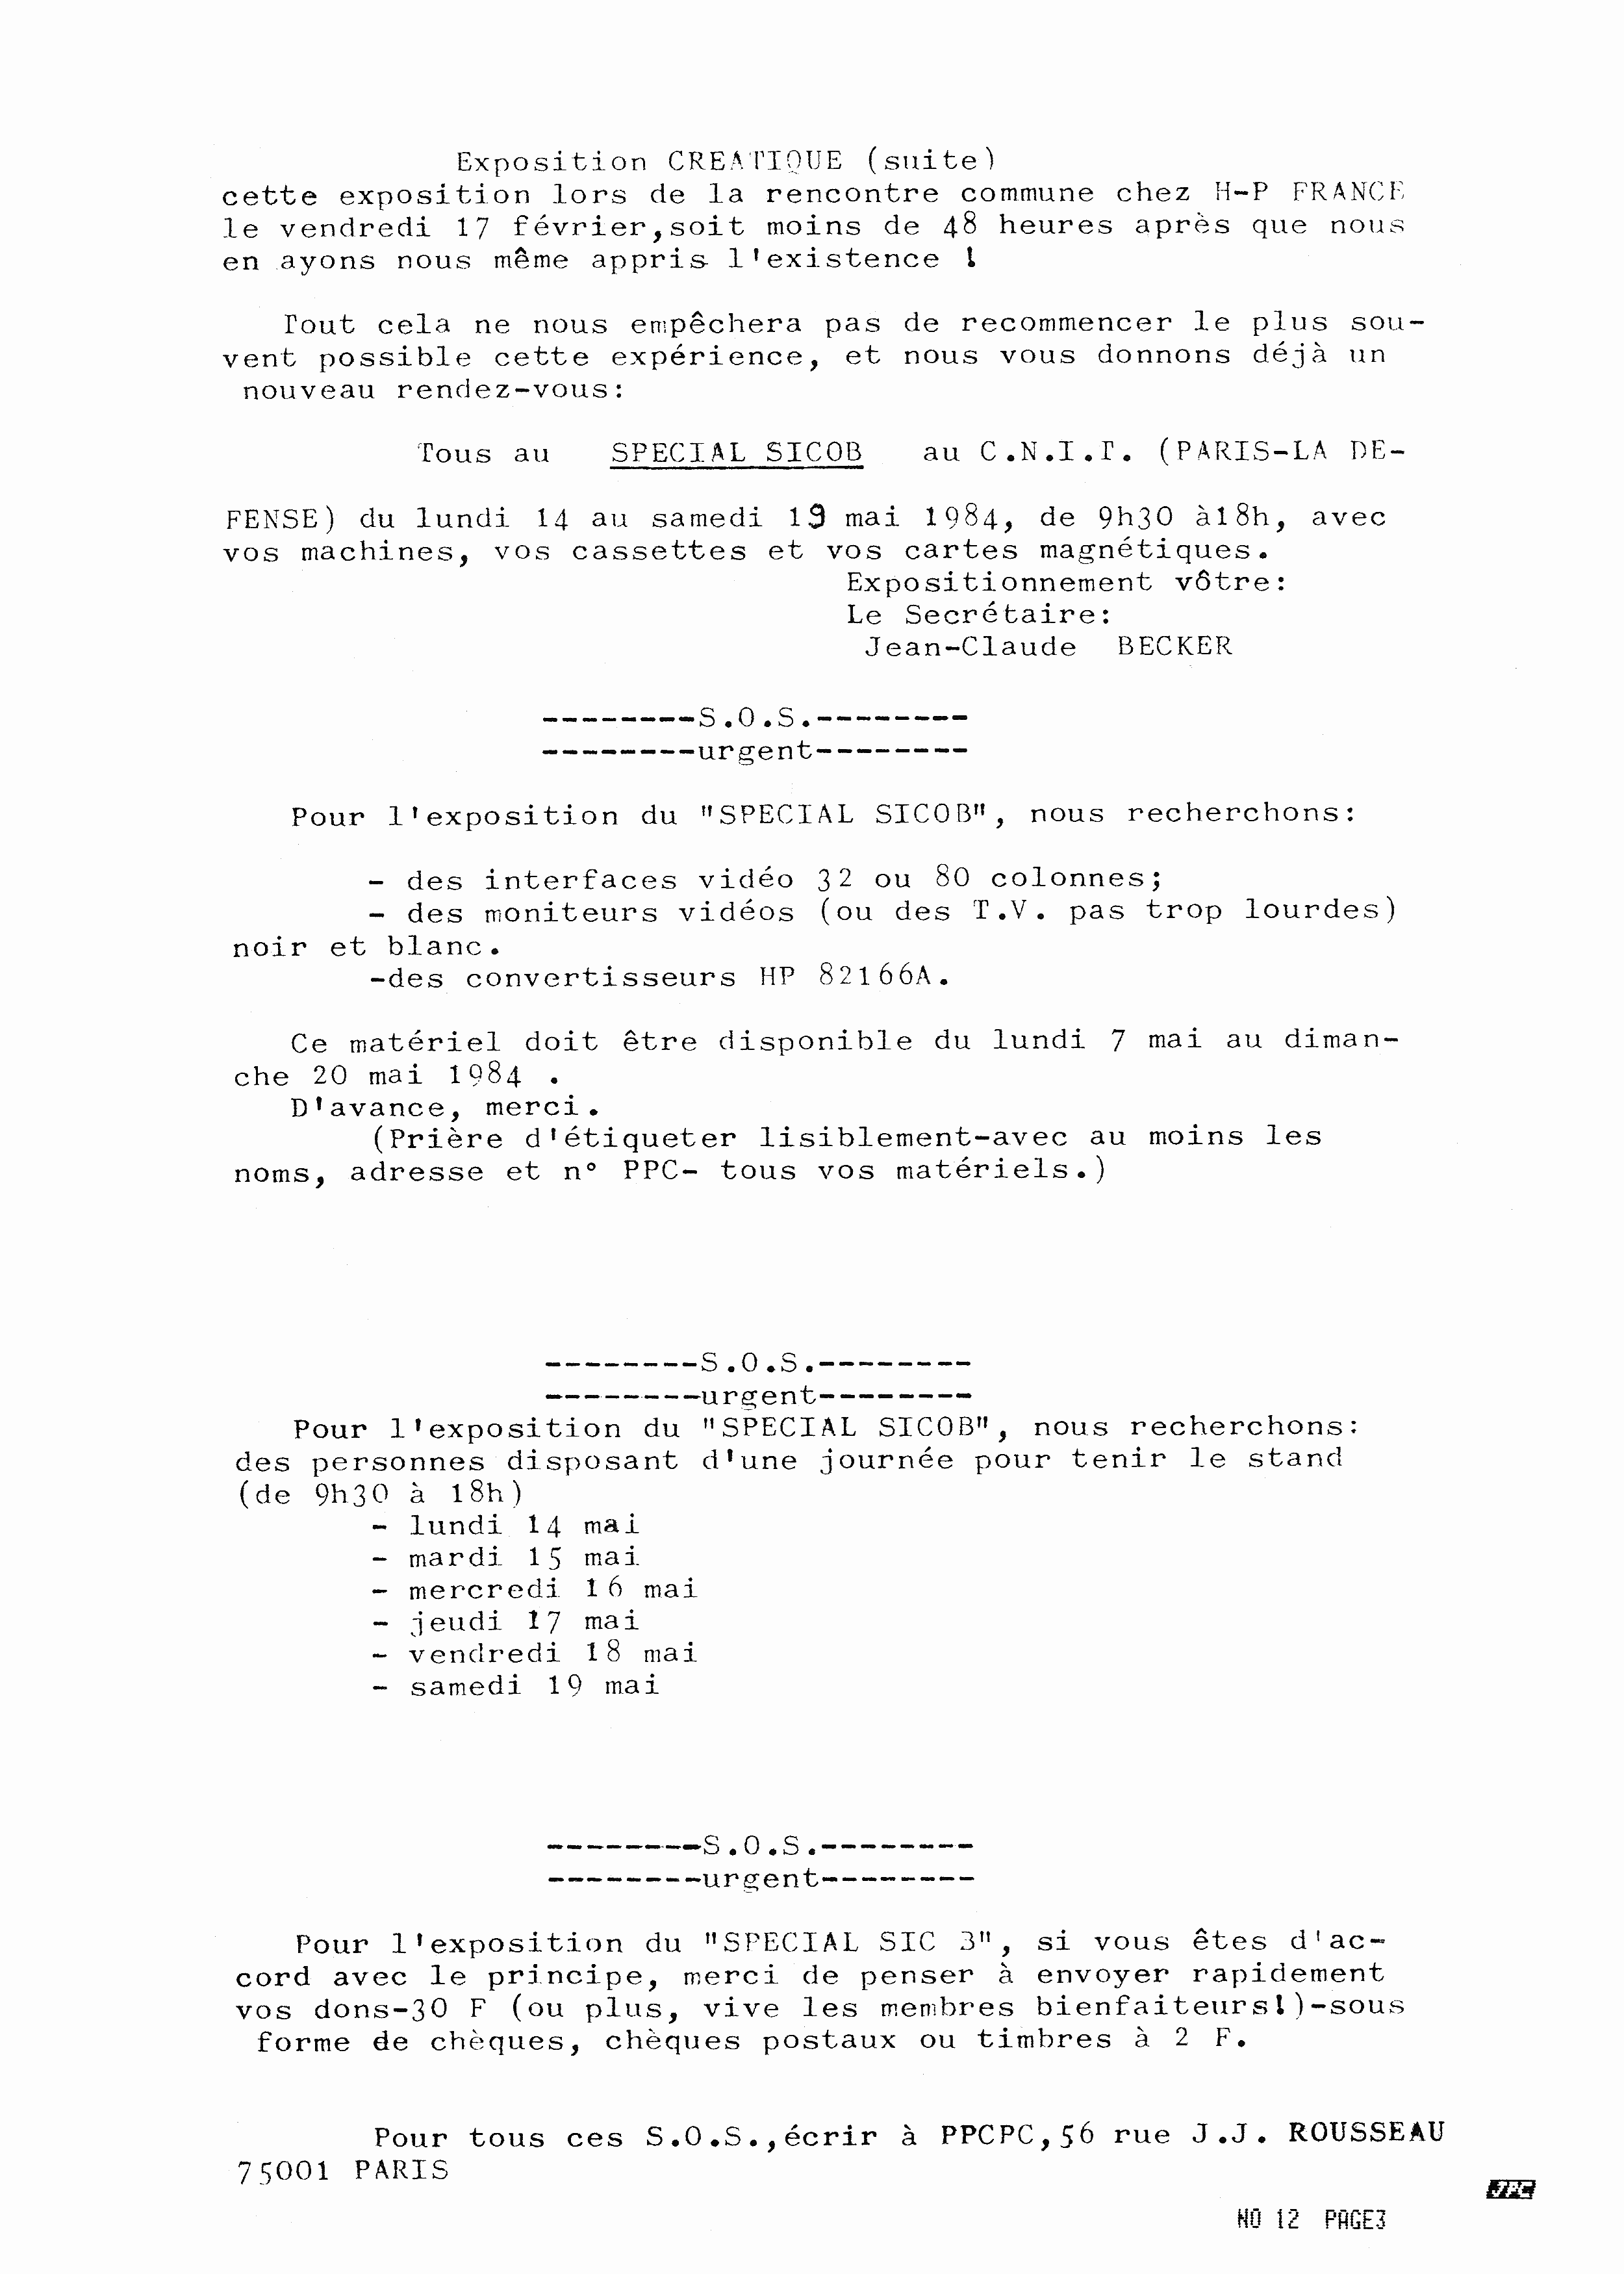 Jp-12-page-3-1000